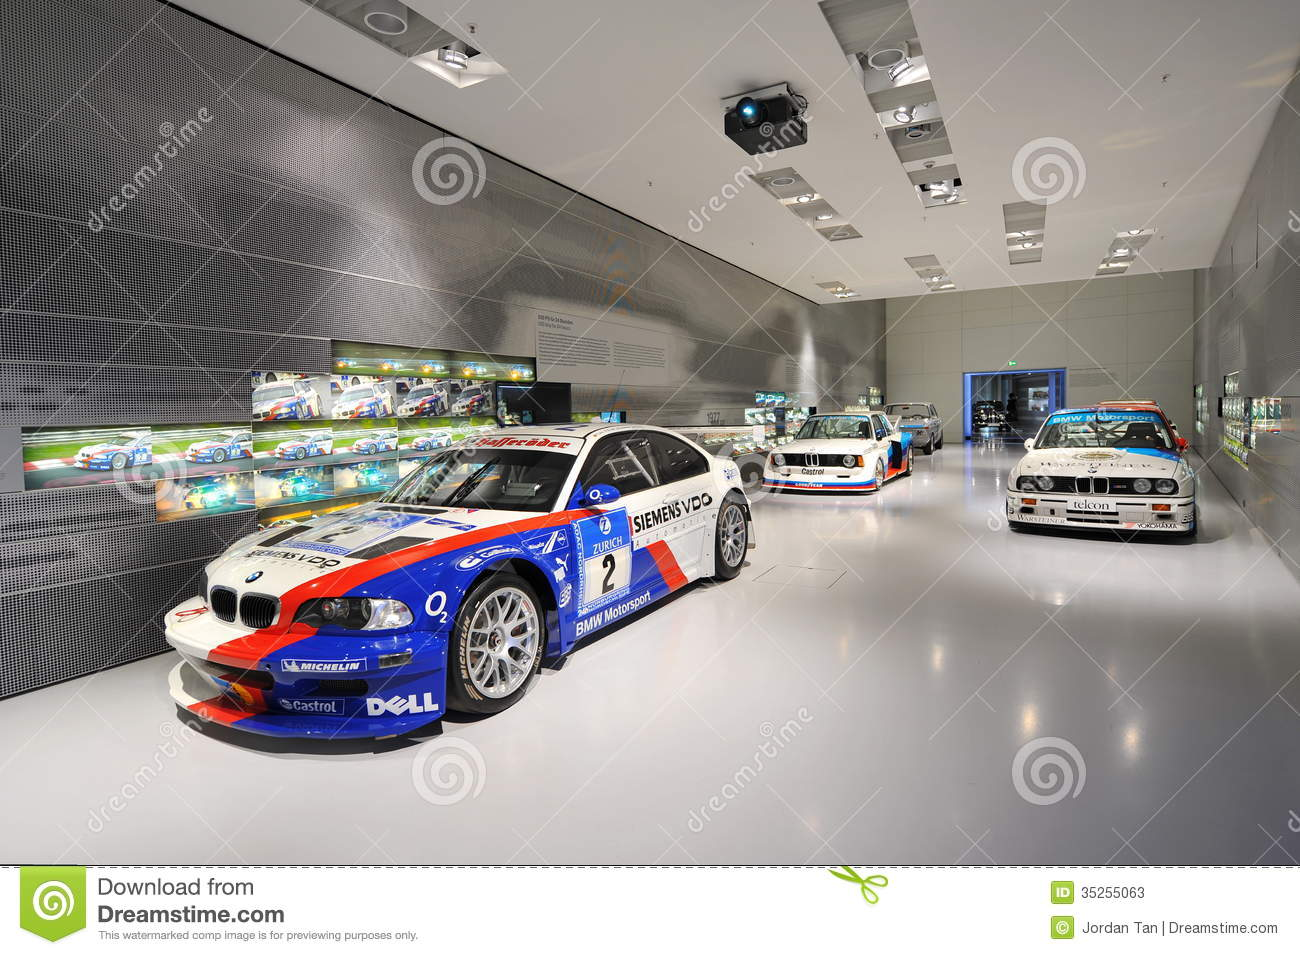 BMW M Competition Cars In The Touring Car Hall Of BMW Museum.